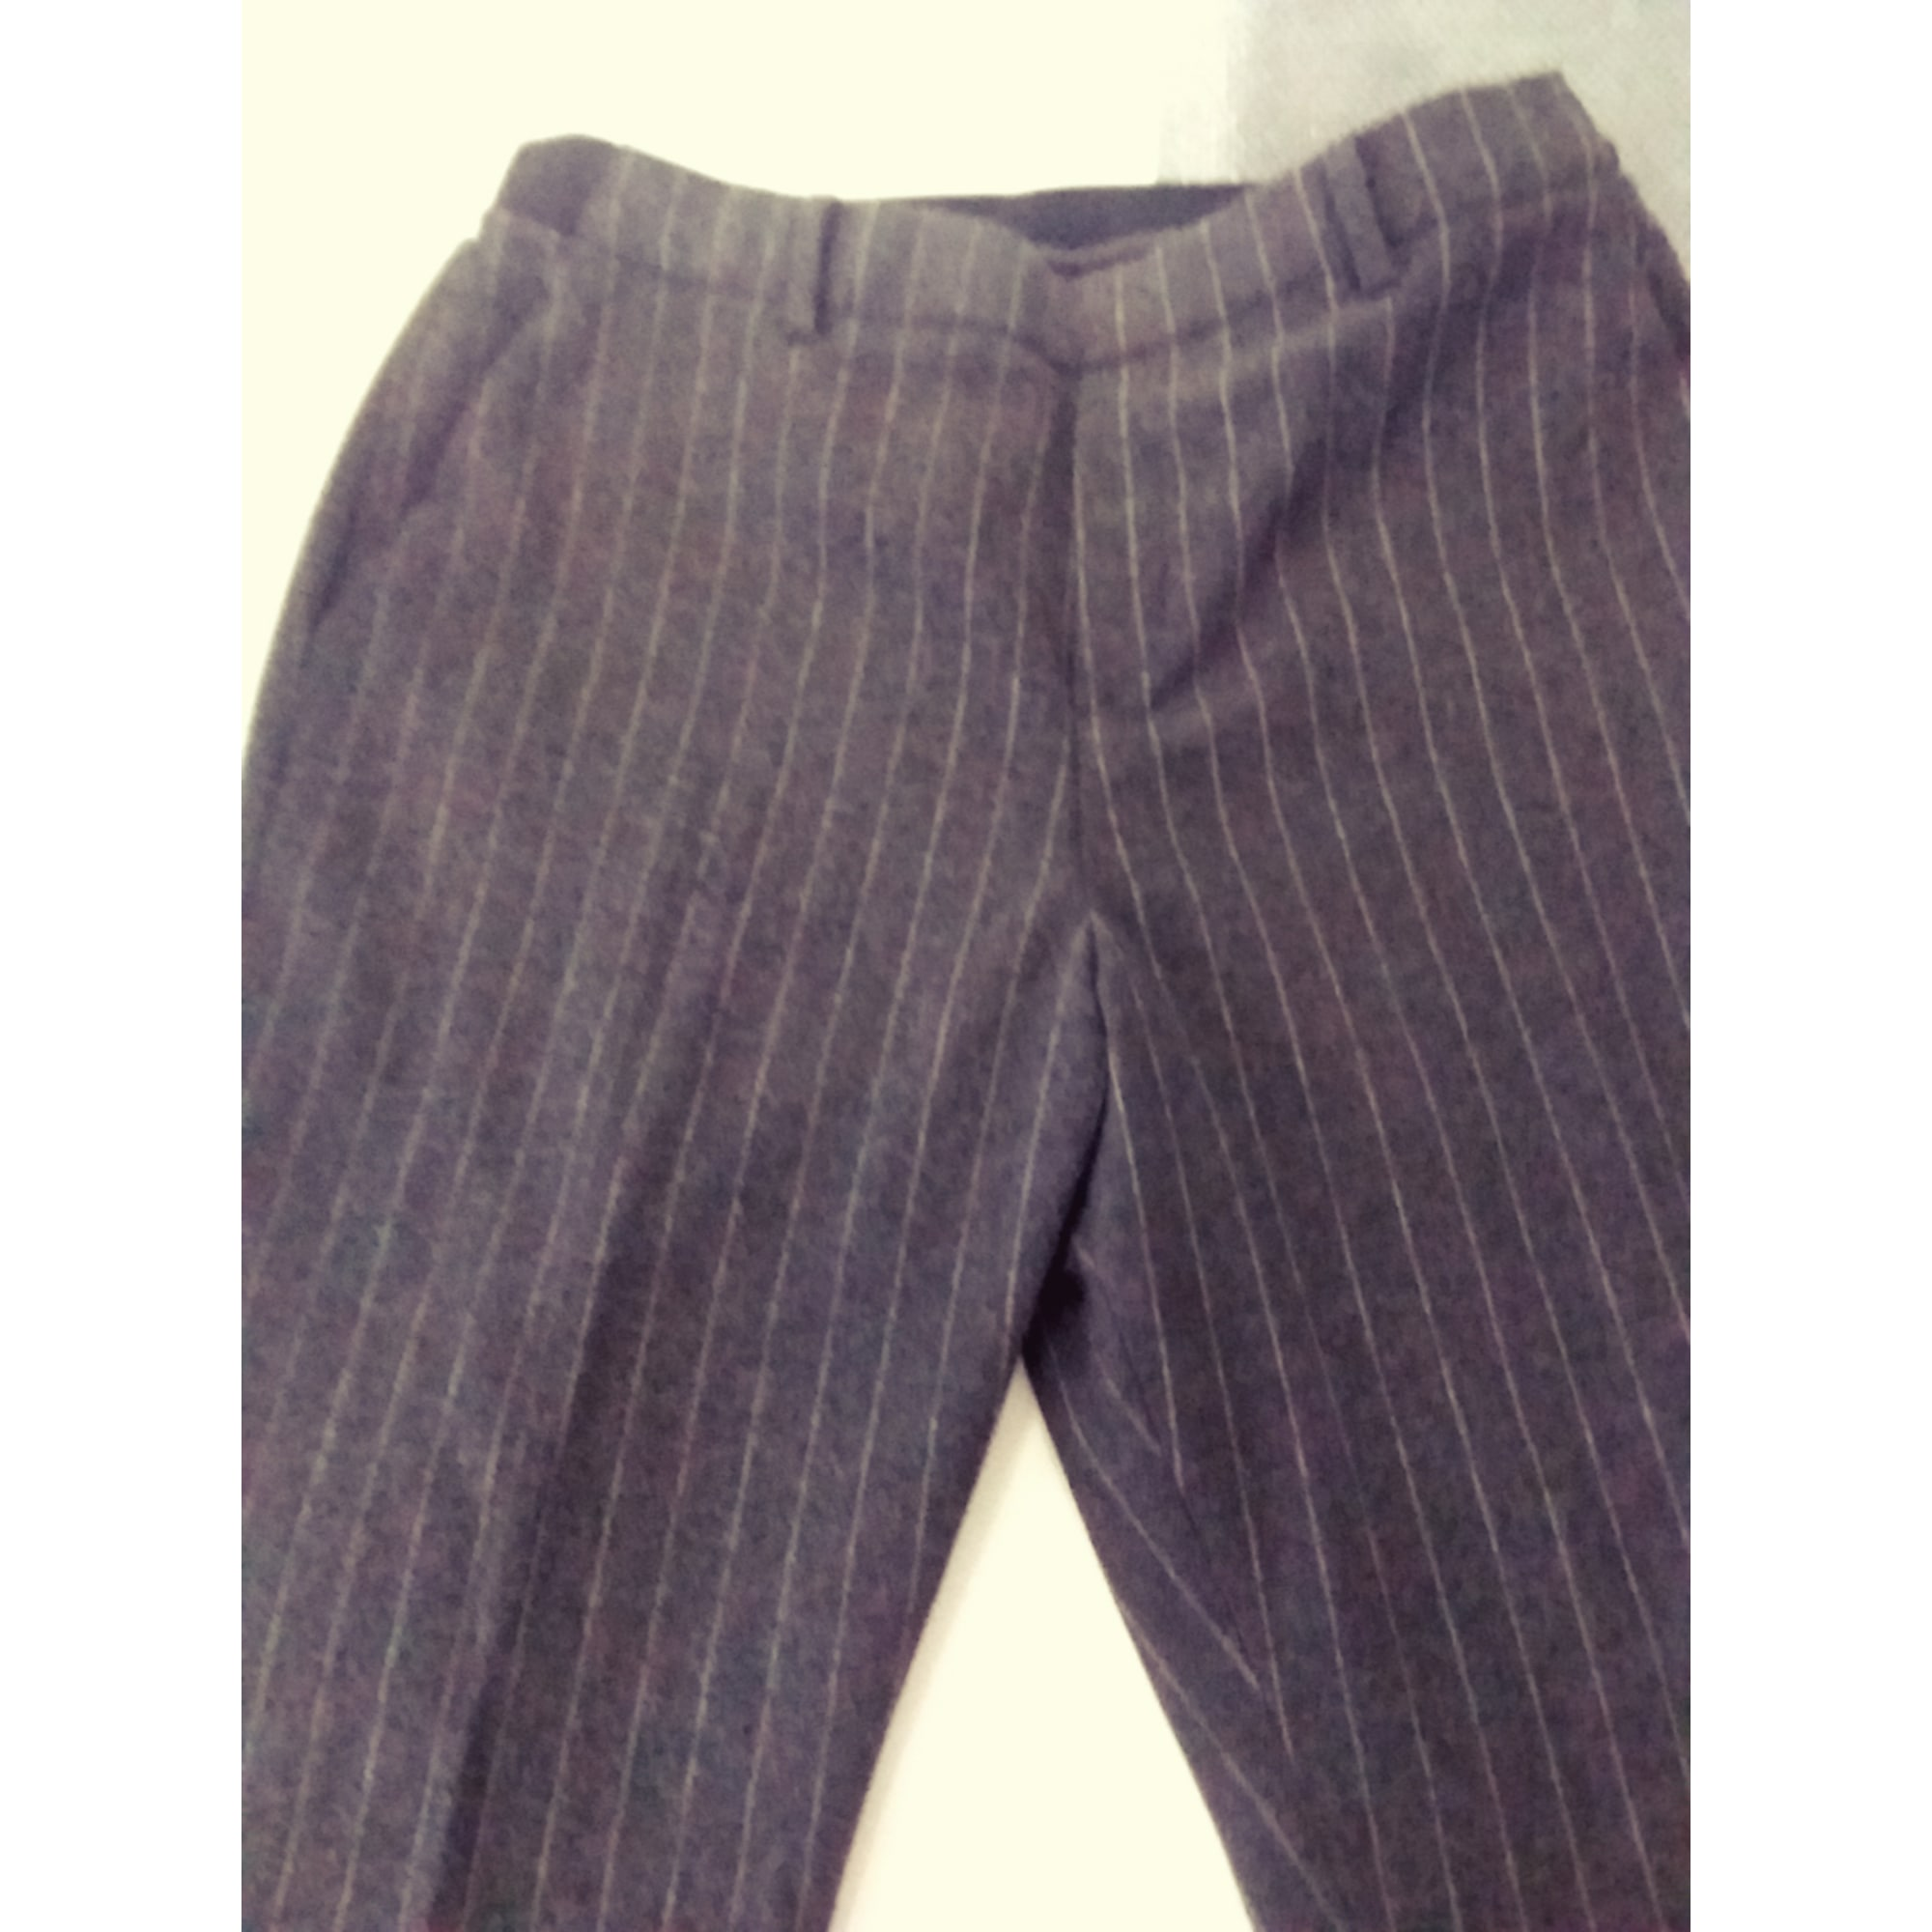 Pantalon droit UNIQLO Gris, anthracite